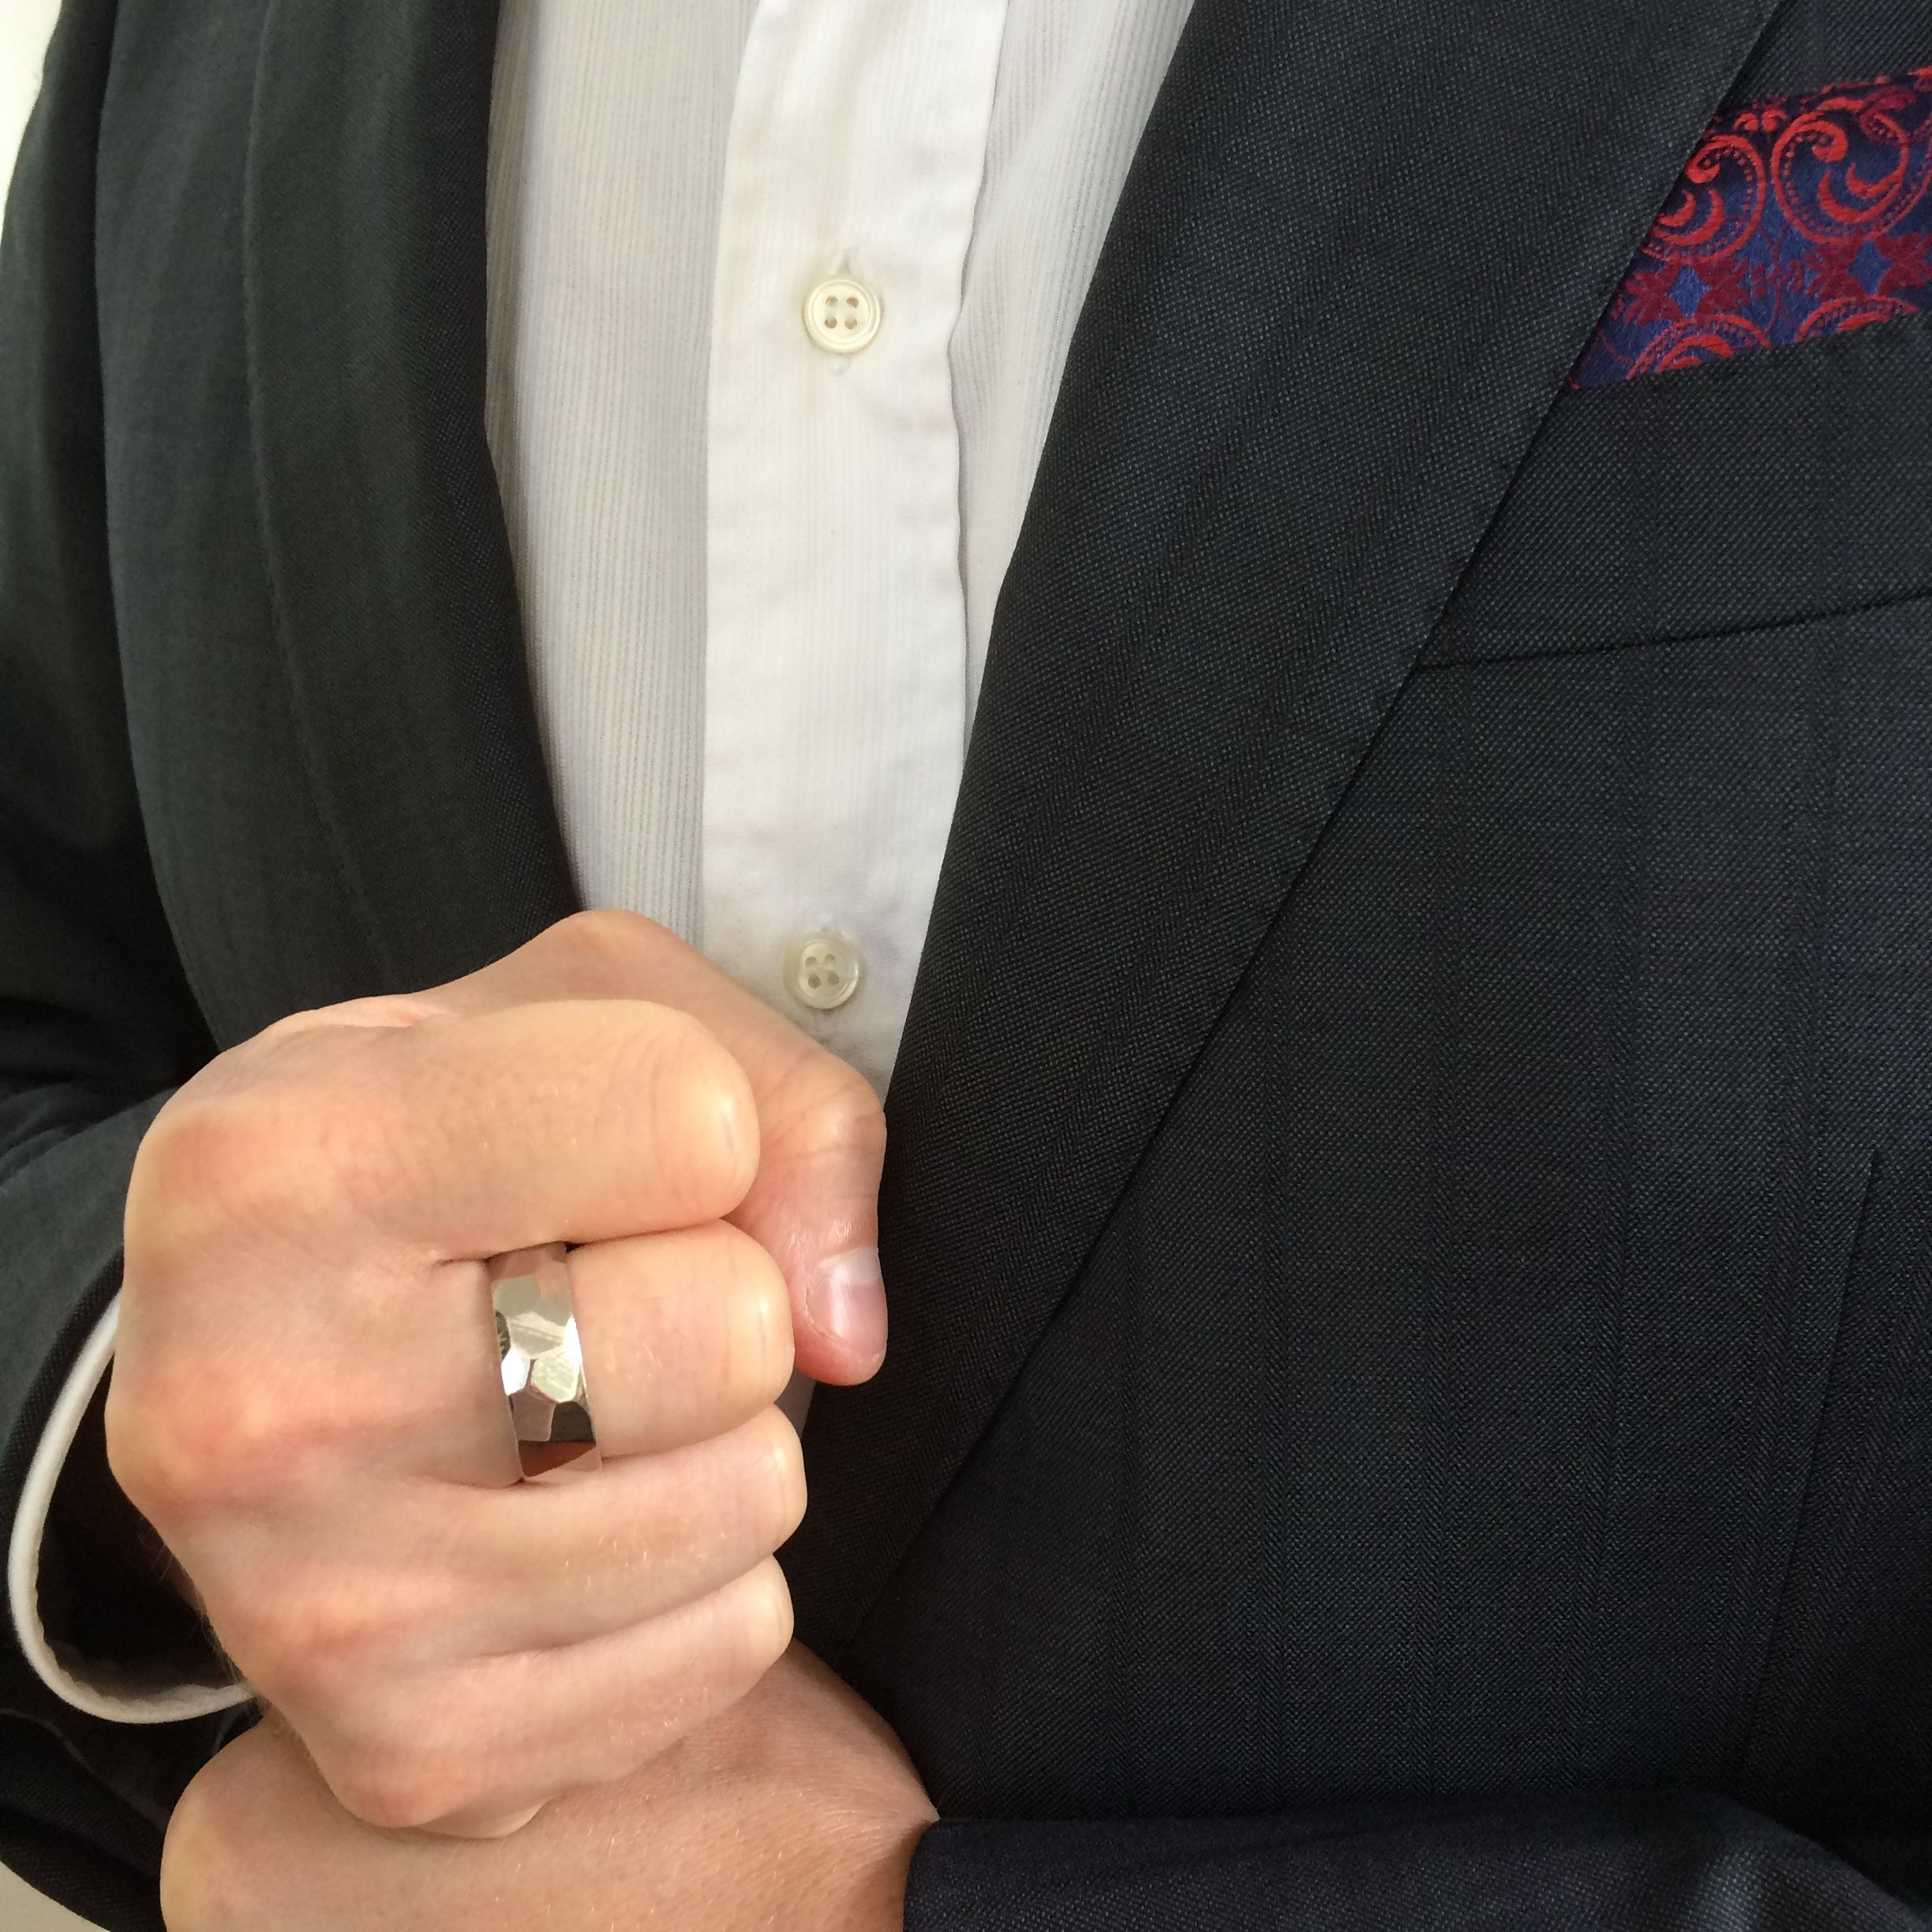 To acquire Wedding Mens rings on hand pictures pictures trends